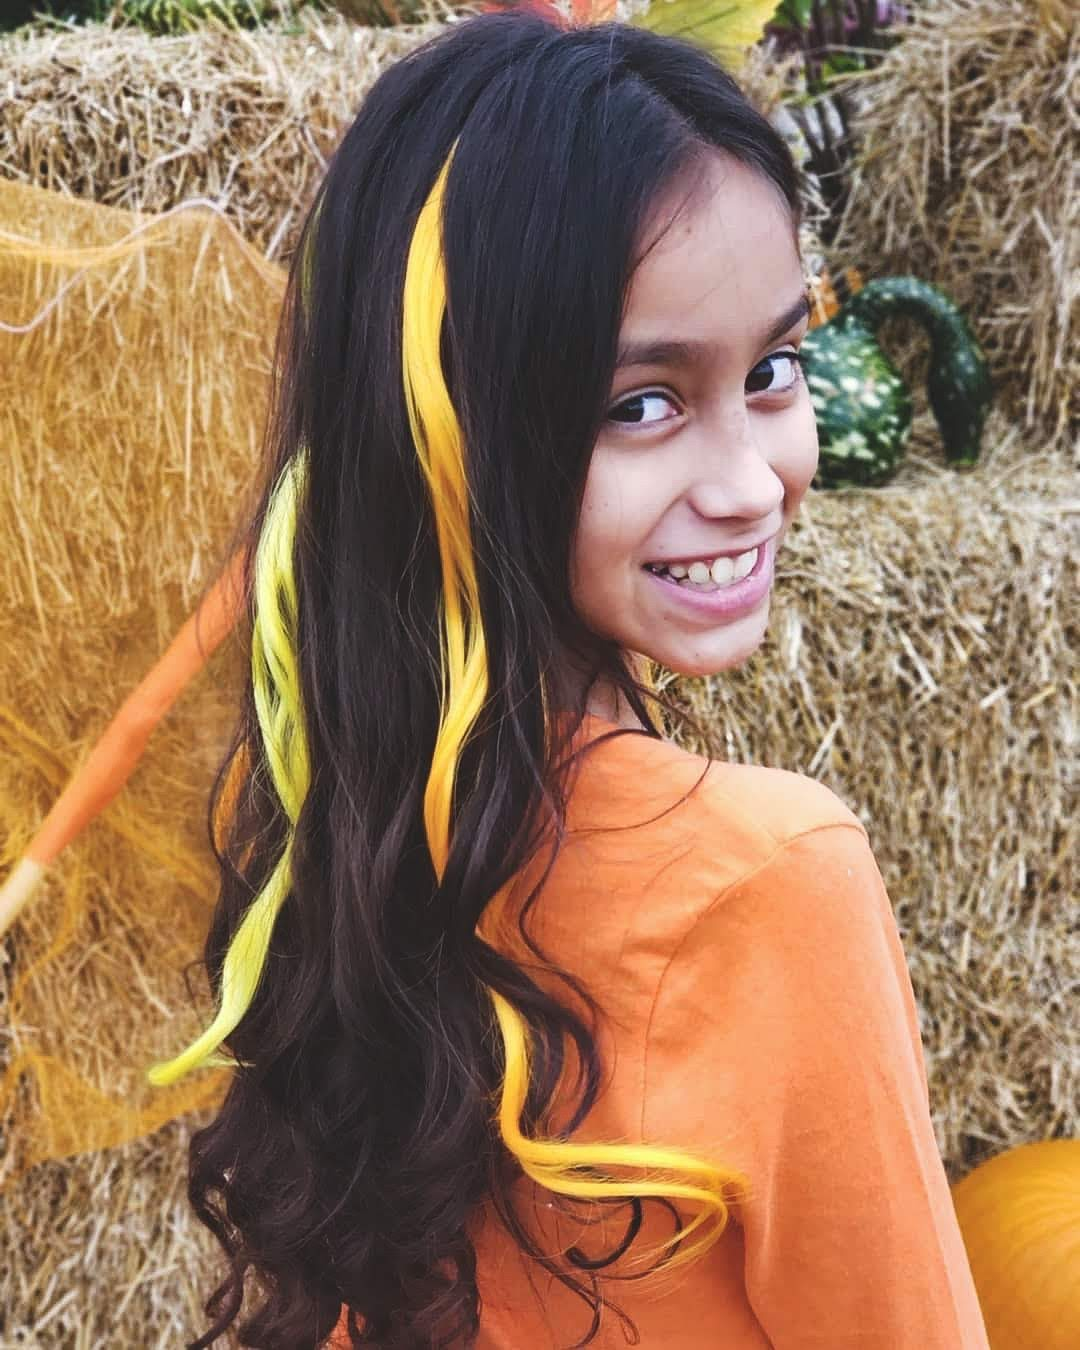 Candy Corn Curls 6 Pack Clip-in Hair Extensions